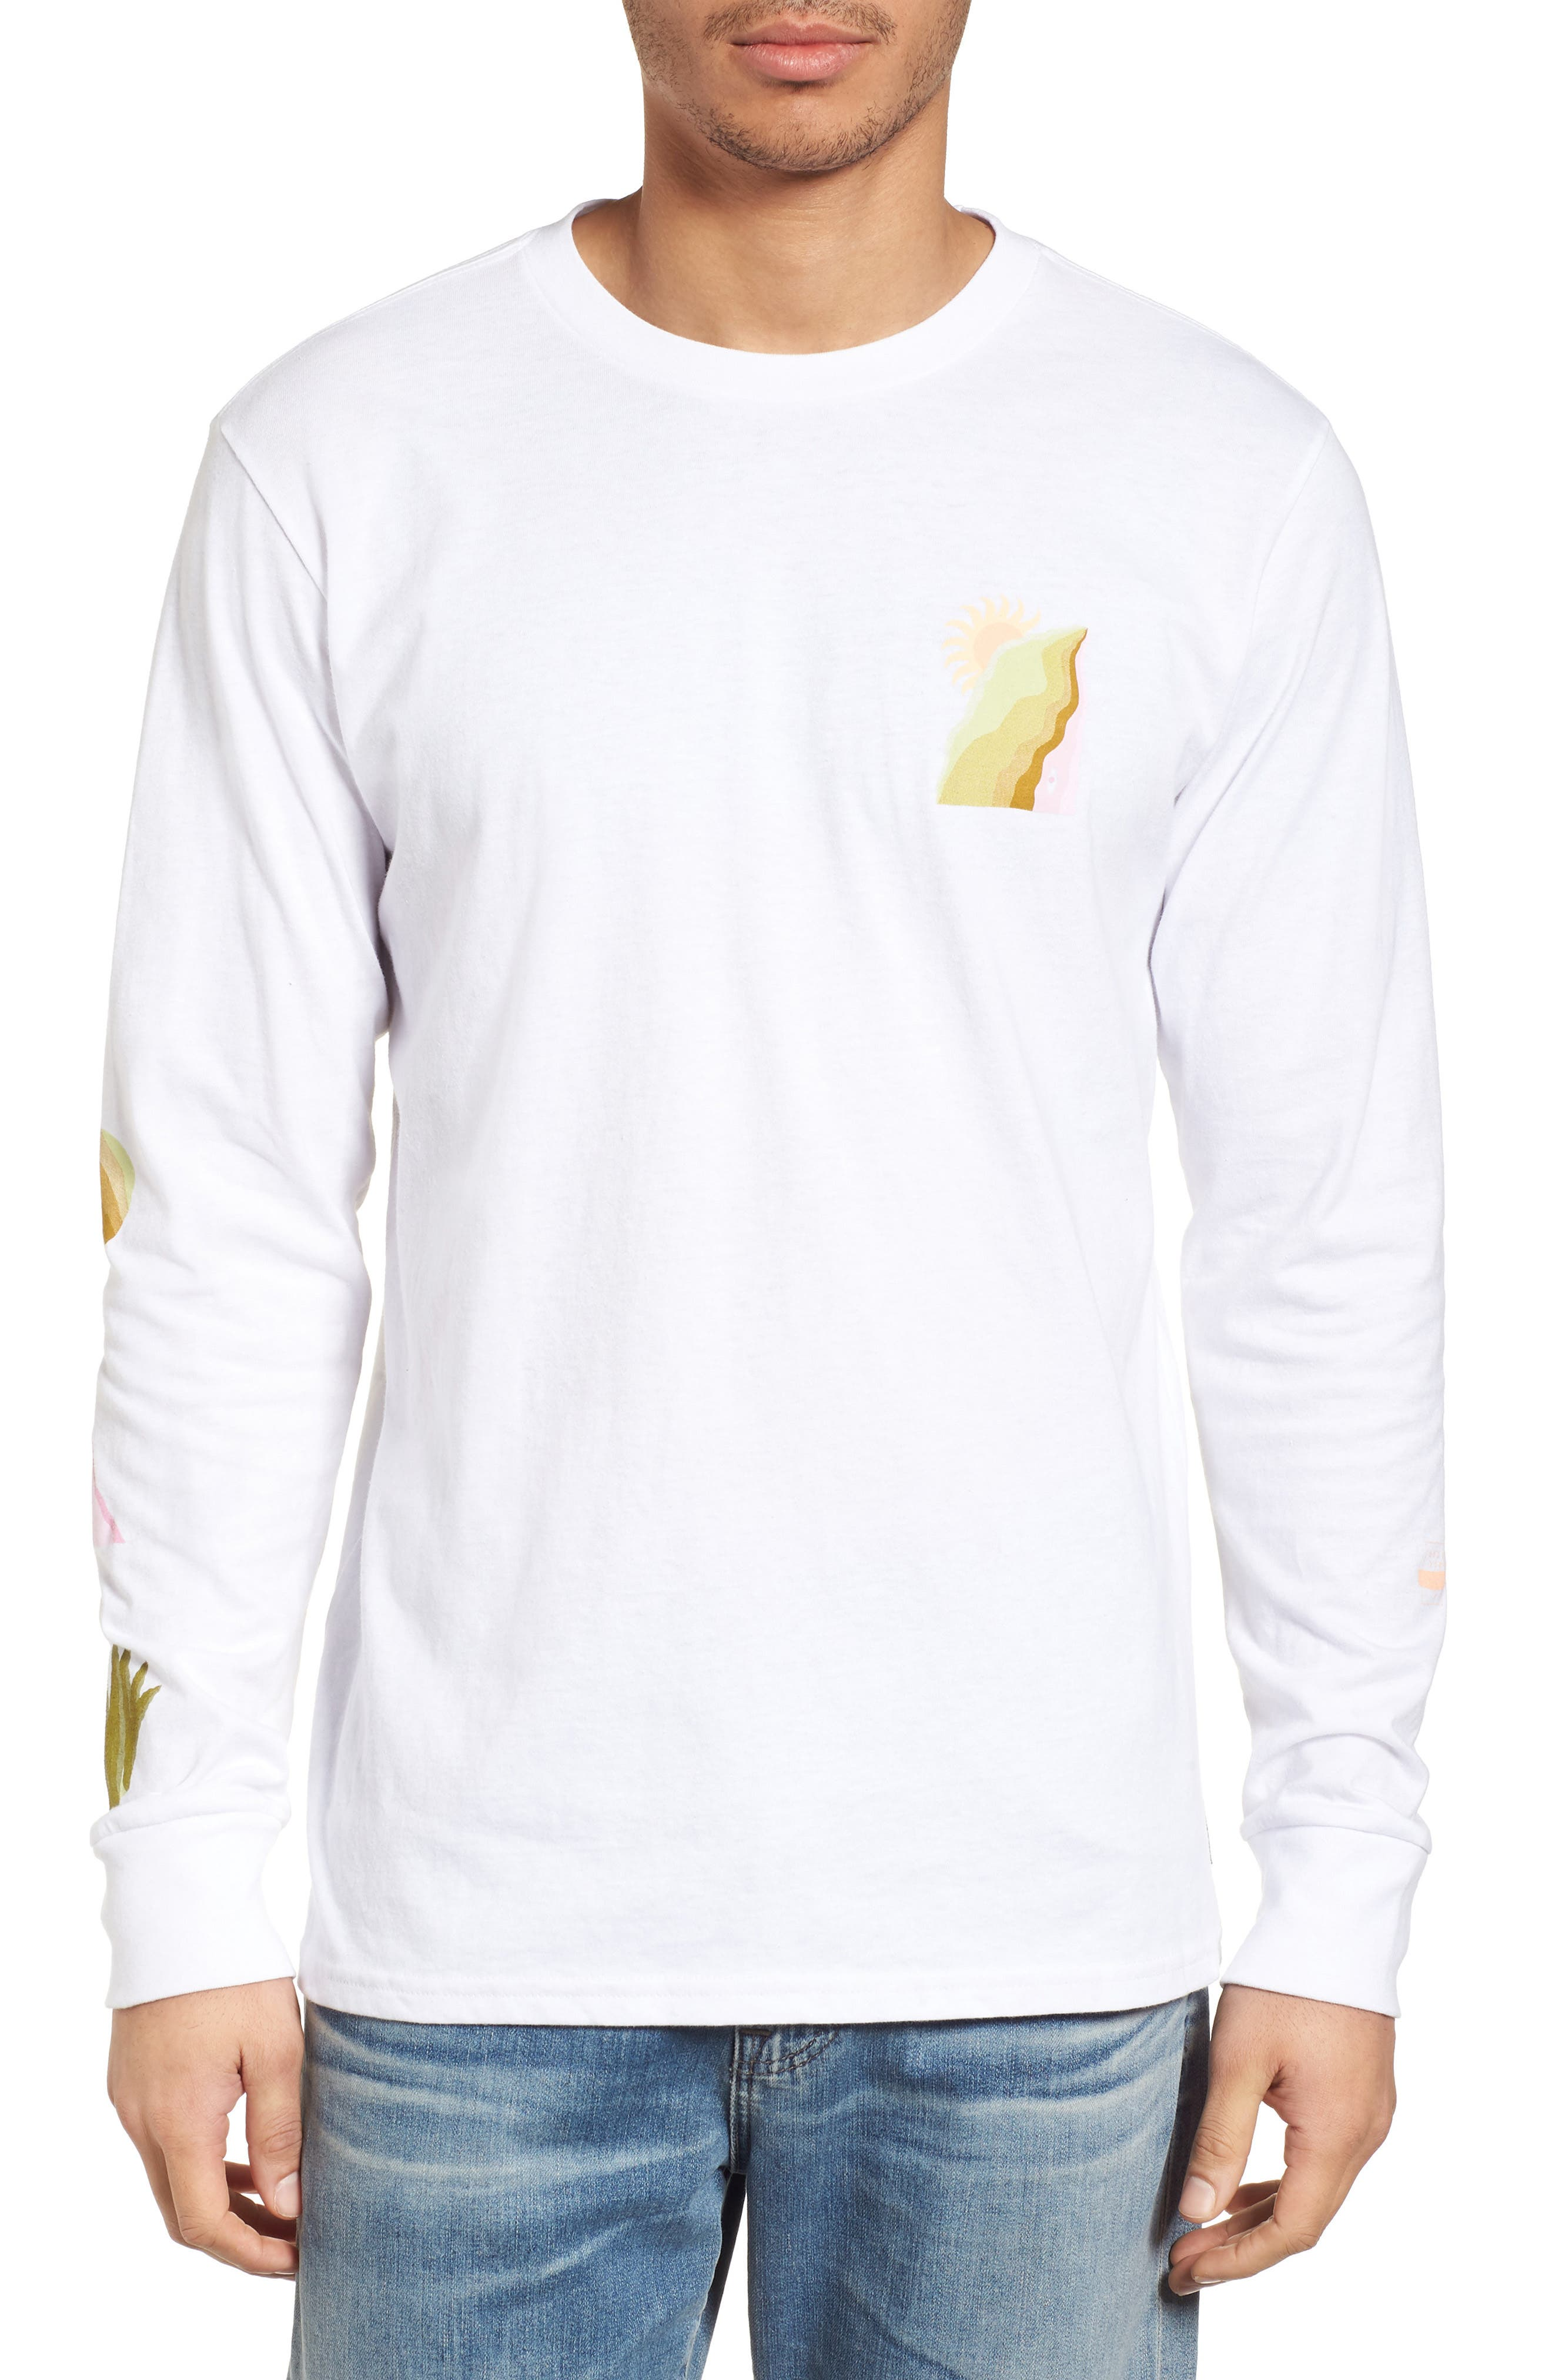 Wandering Eye Embroidered Long Sleeve T-Shirt,                         Main,                         color, White